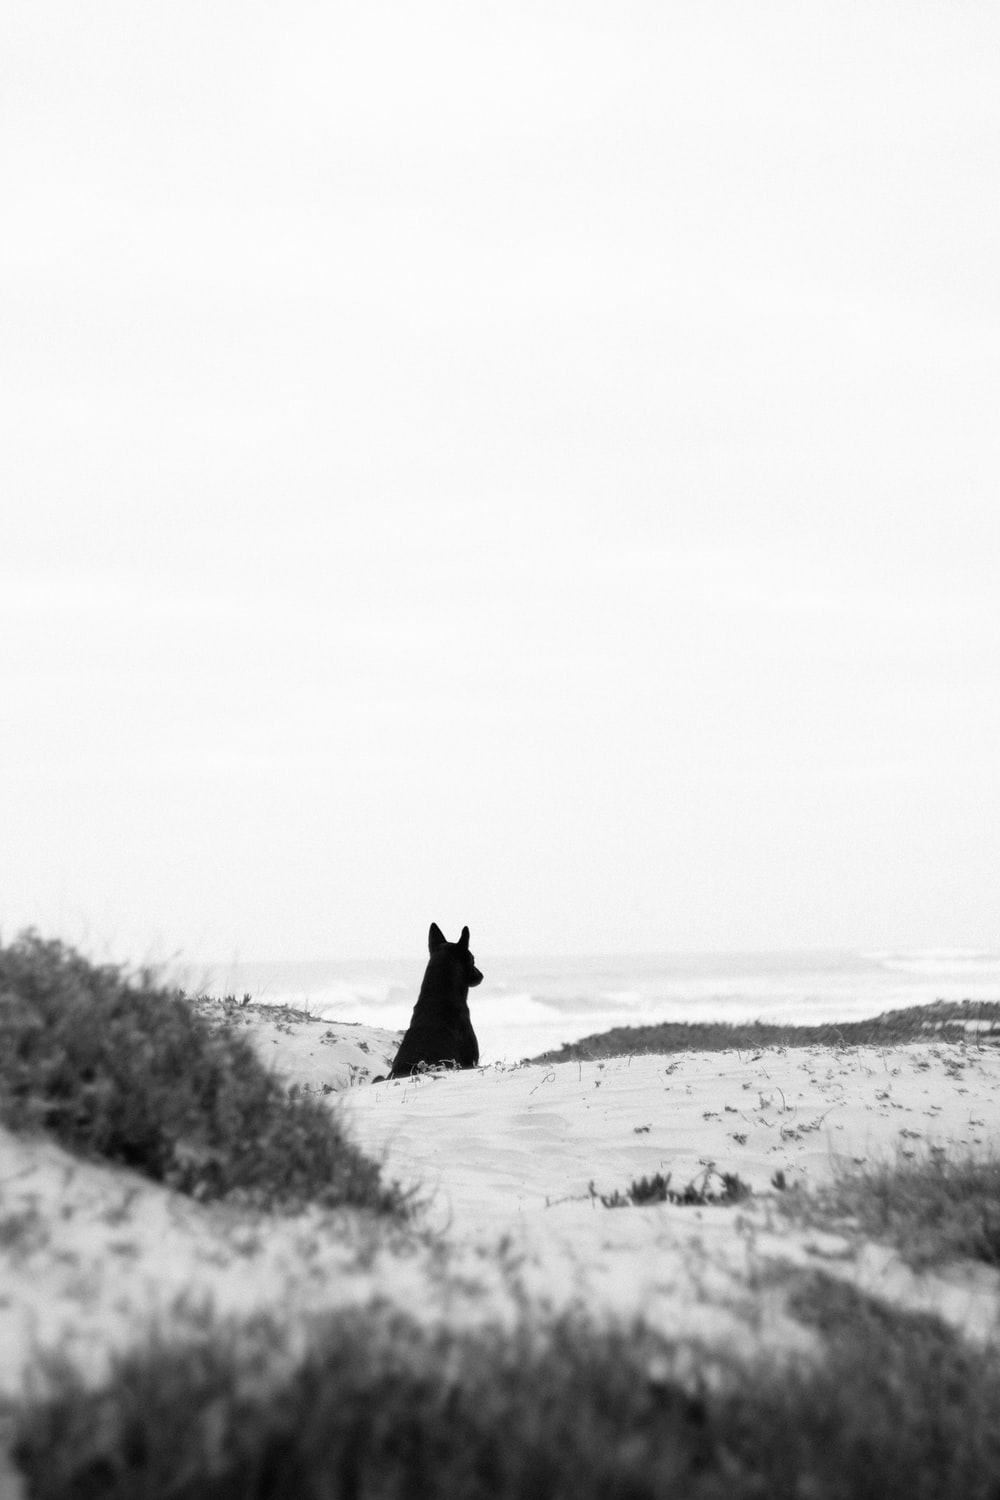 grayscale photography of black animal